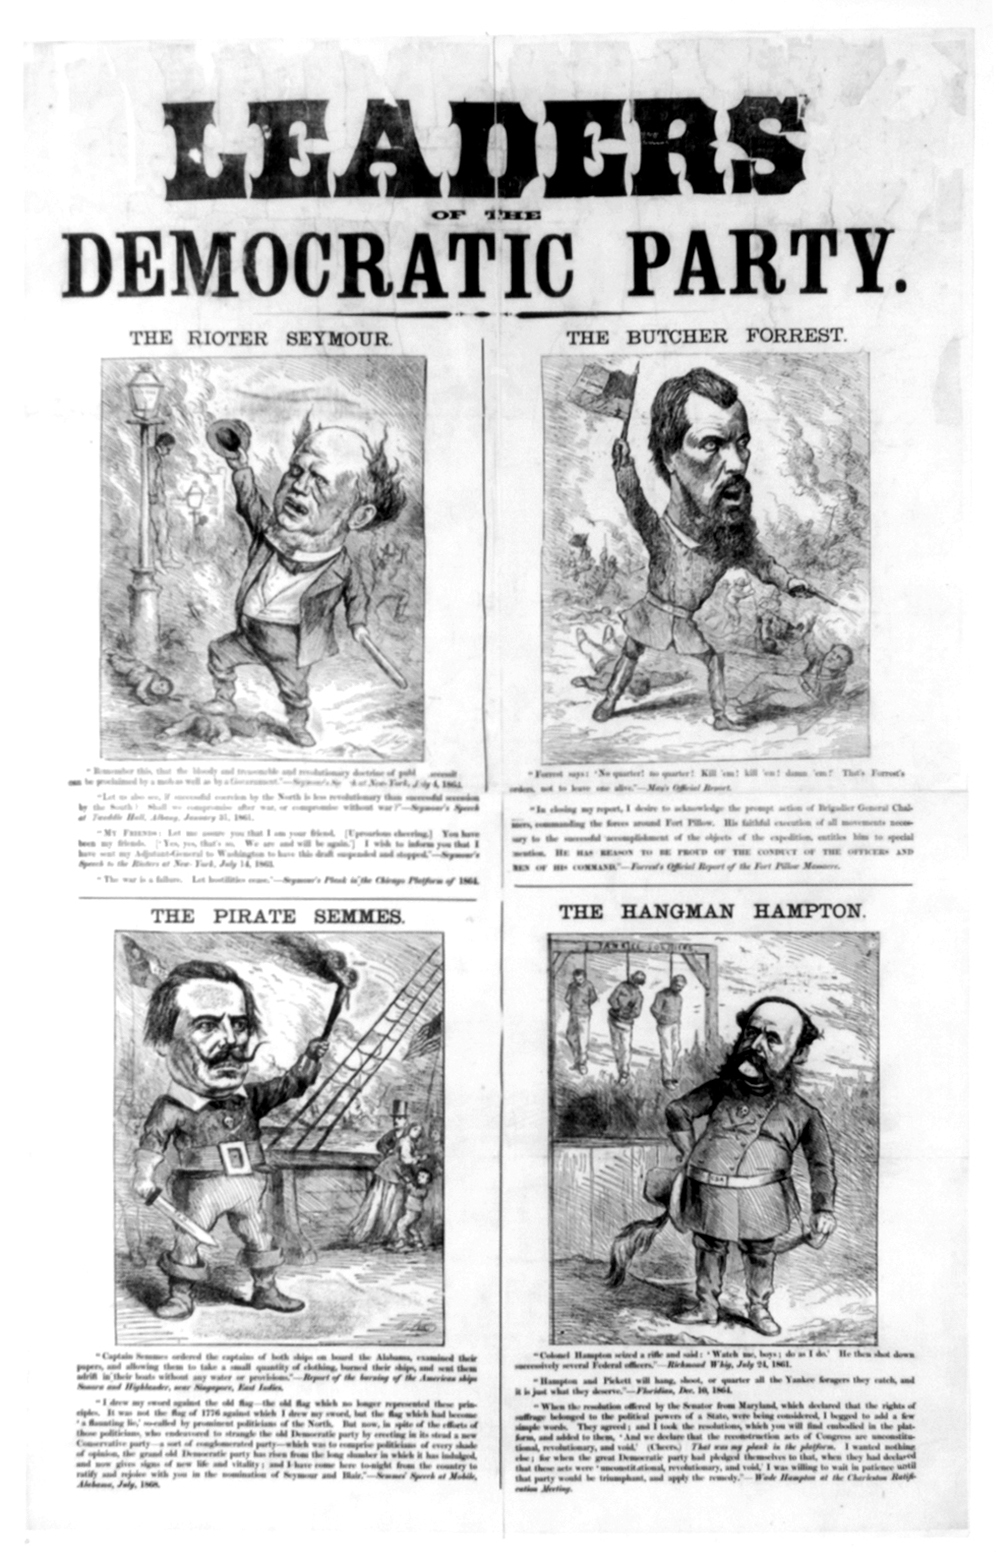 Leaders of the Democratic Party including The Rioter Semour and The Butcher Forrestby Thomas Nast, depicting Horatio Seymour. Published 1868 - PD Source: Library of Congress